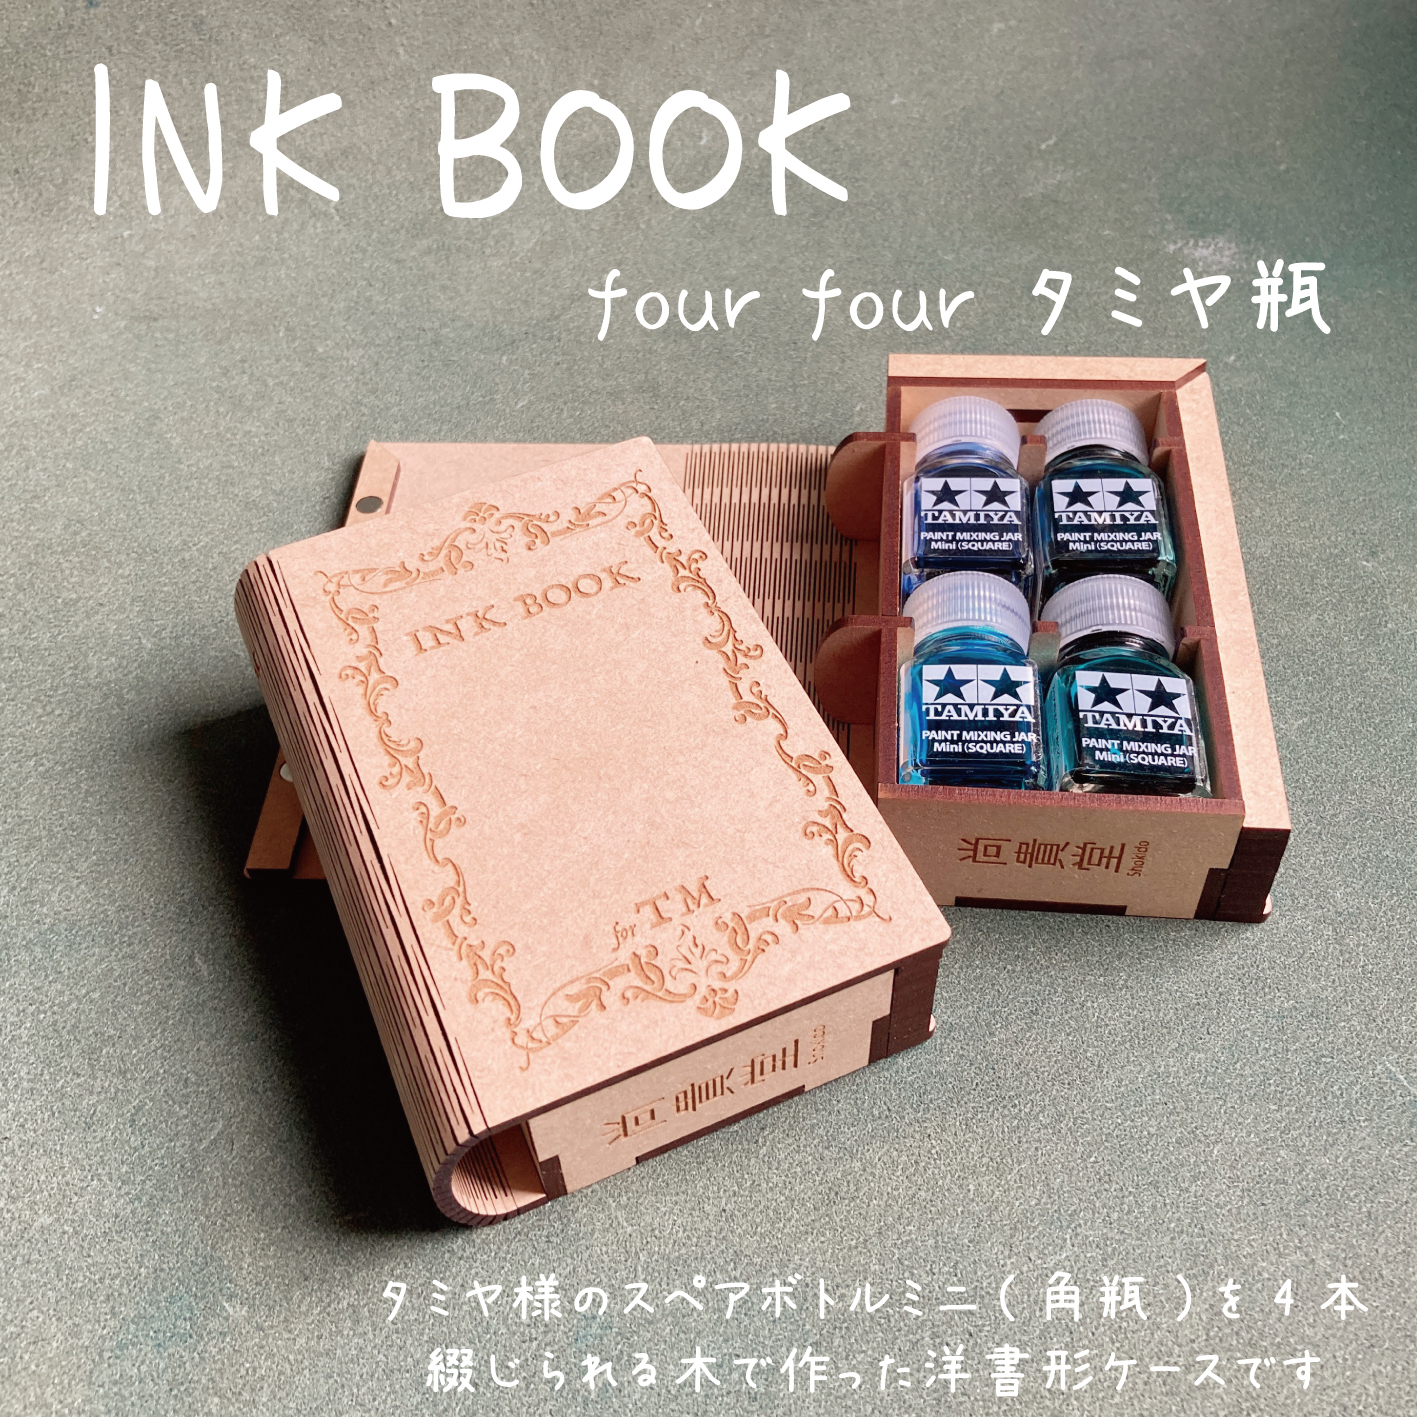 INK BOOK for four TM(タミヤ瓶対応)